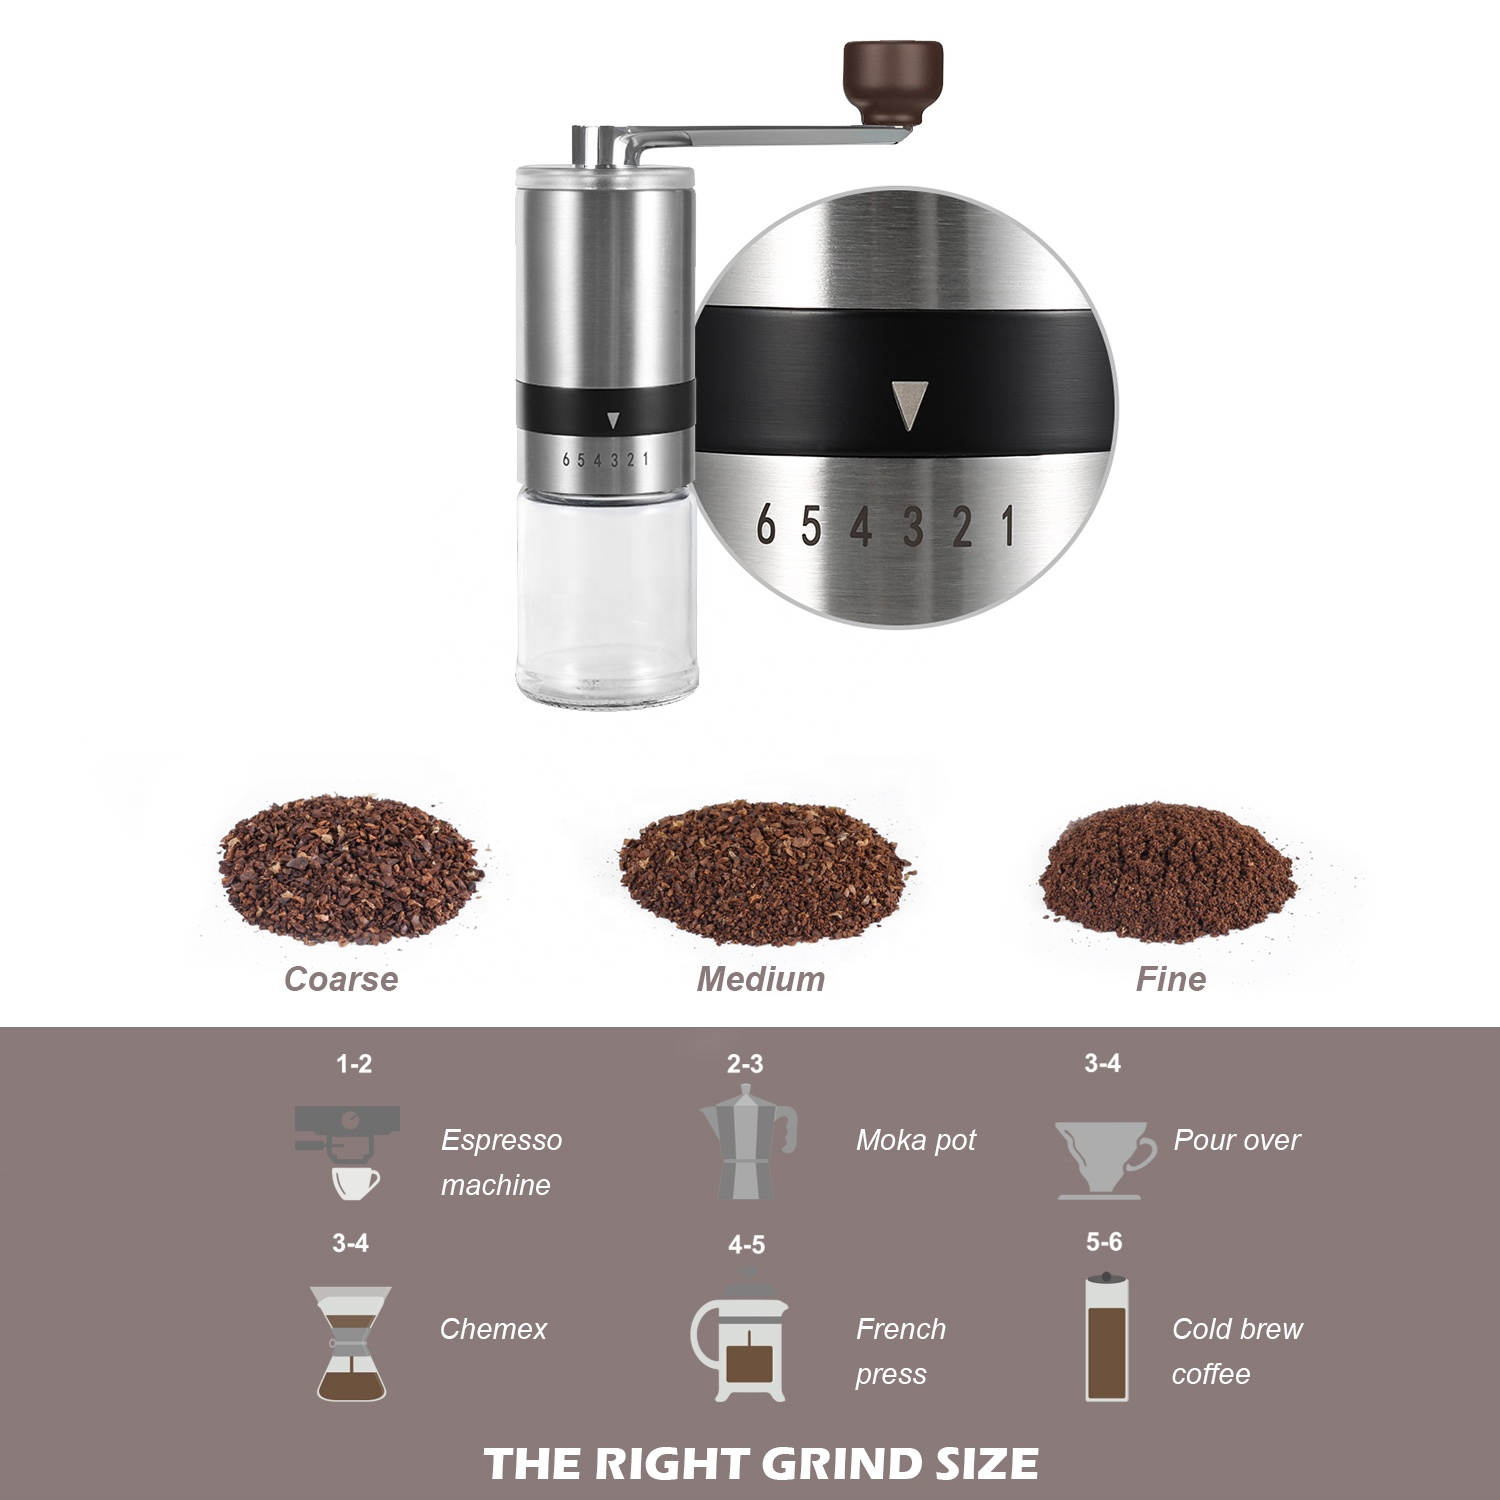 2021 New Arrivals Amazon Top Seller High Quality Mini Portable Manual Coffee Grinder with 304 Stainless Steel Adjustable Ring